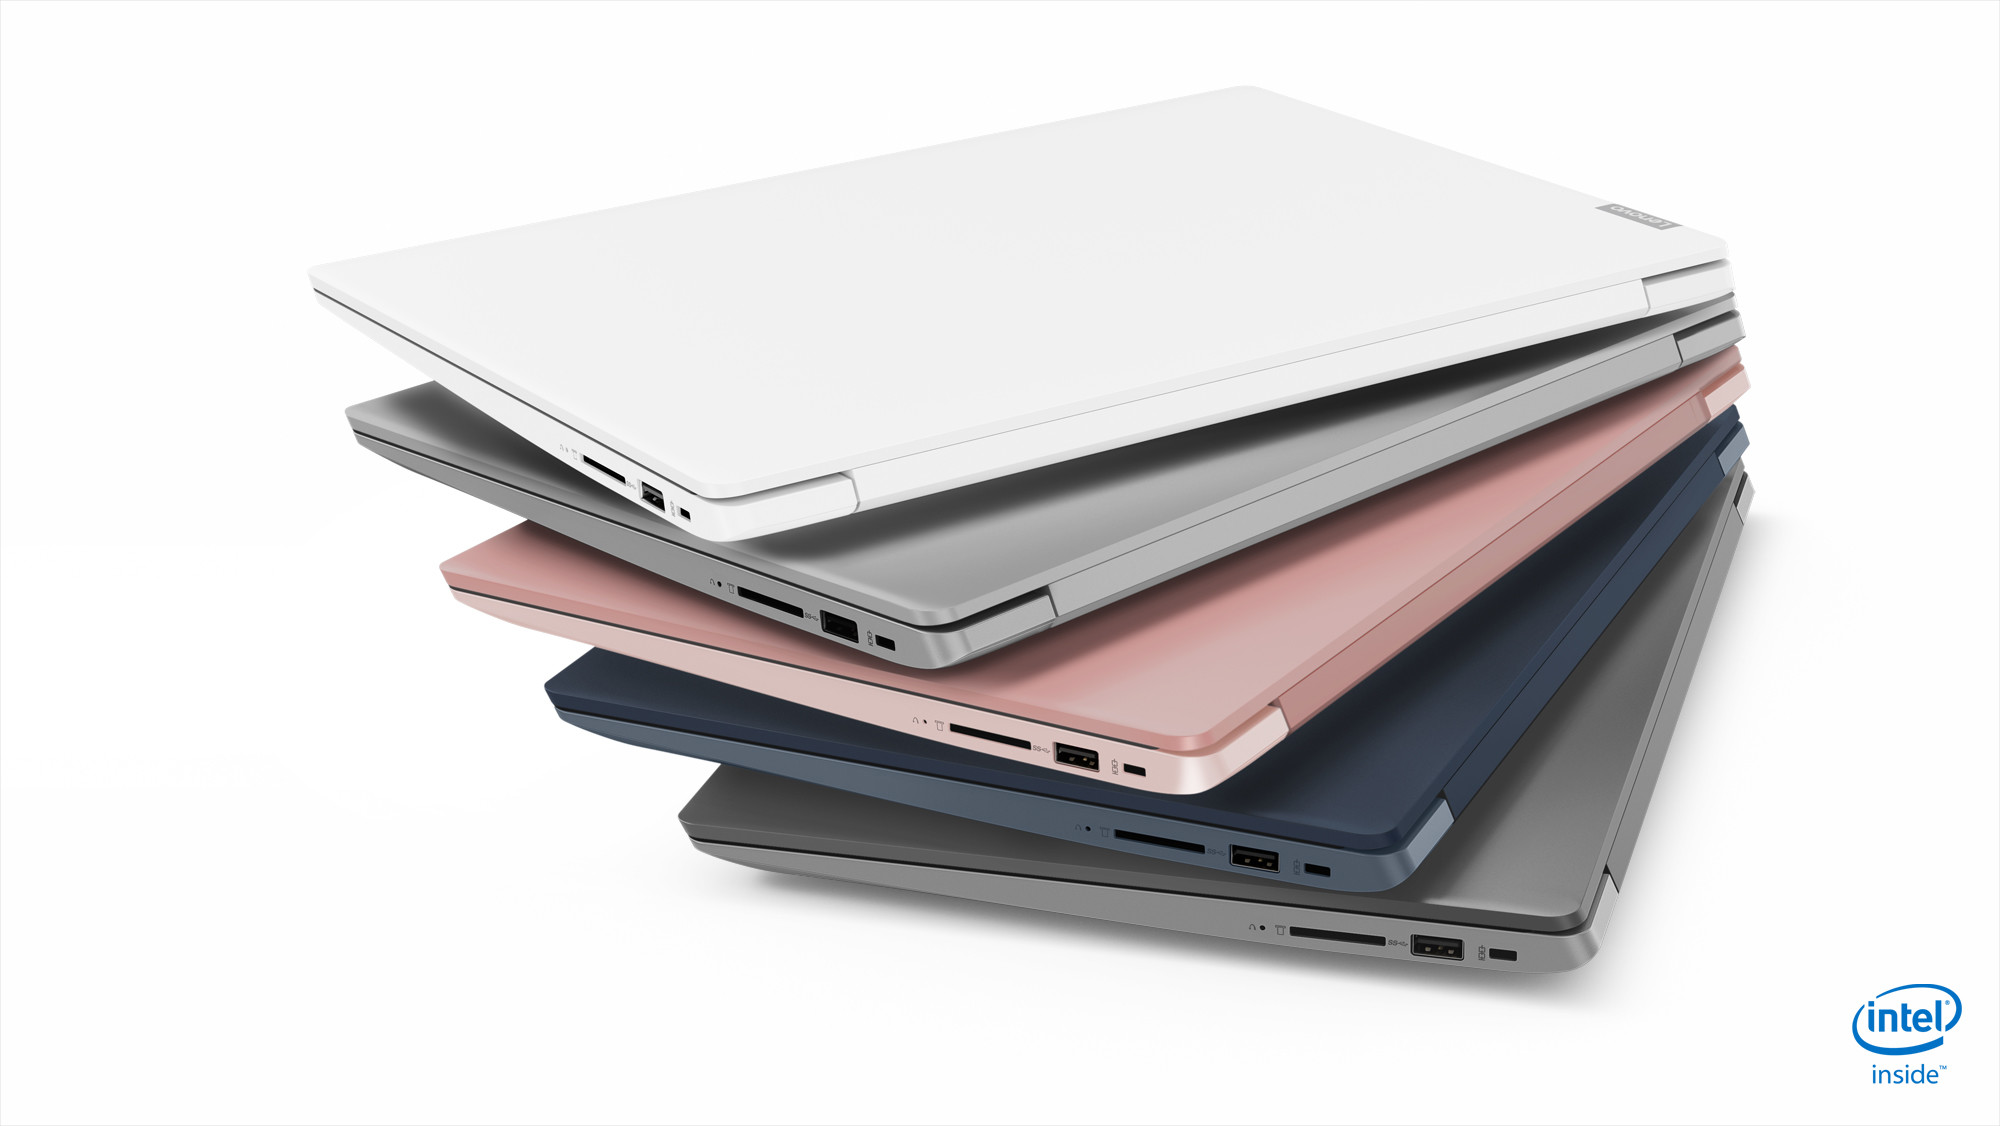 Lenovo unveils IdeaPad 330, 330S and 530S Windows 10 laptops